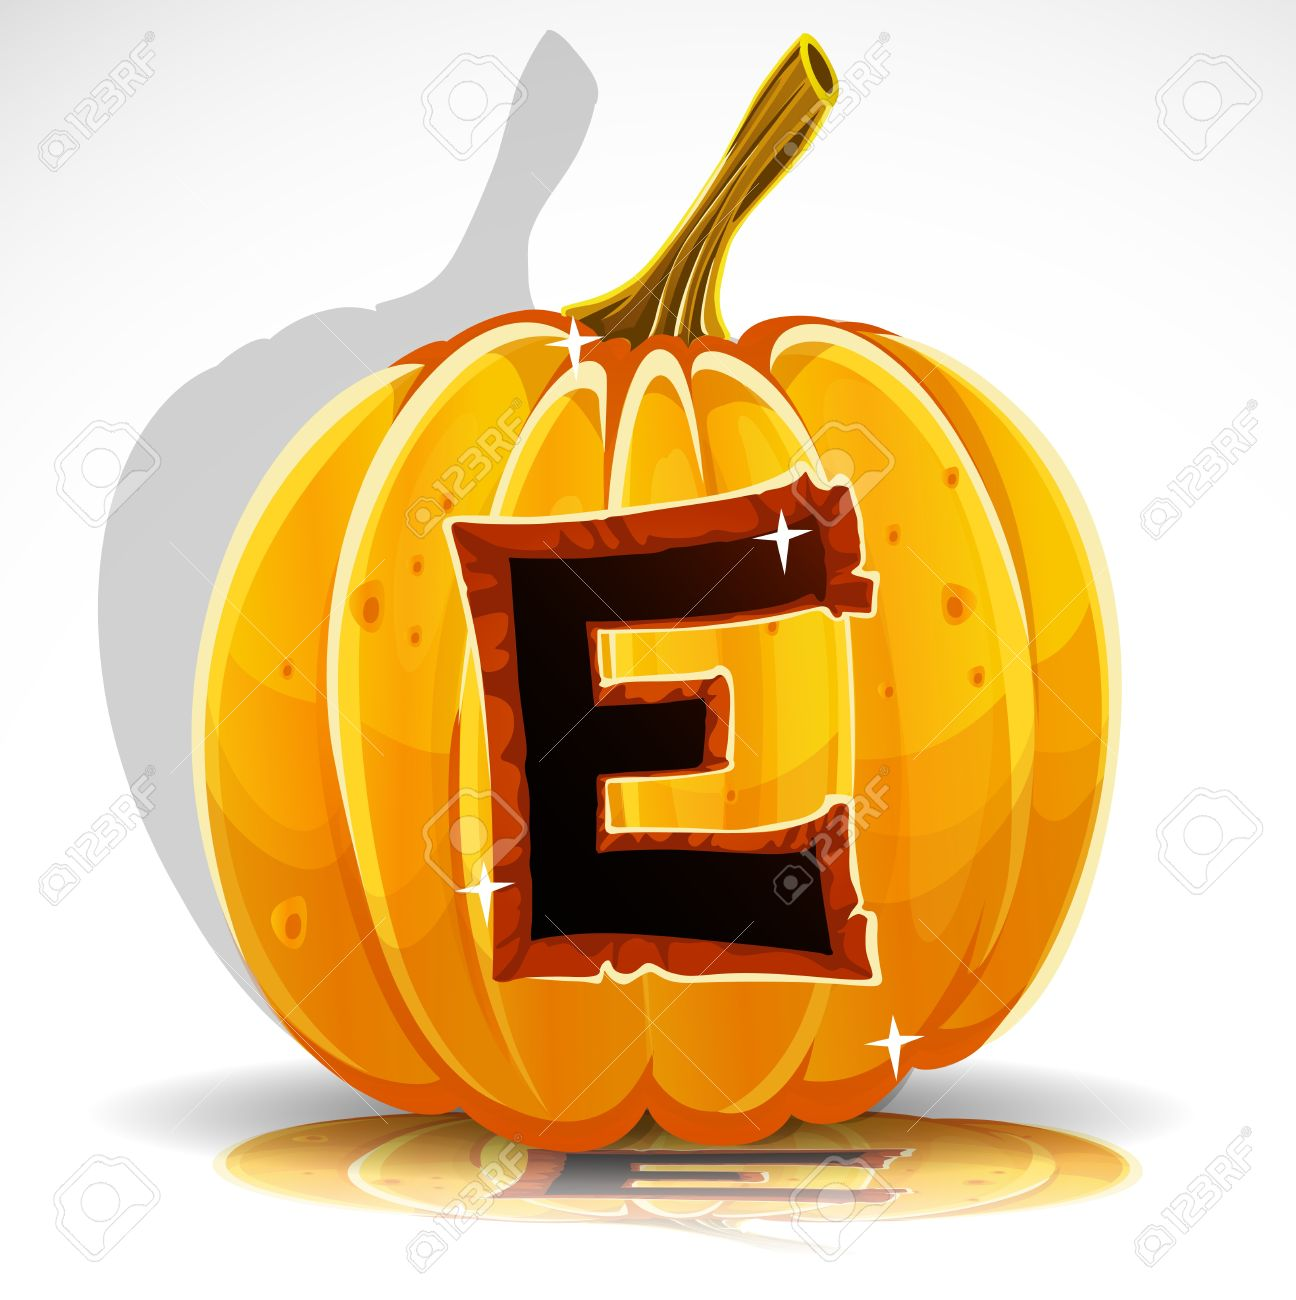 Image result for the letter e halloween